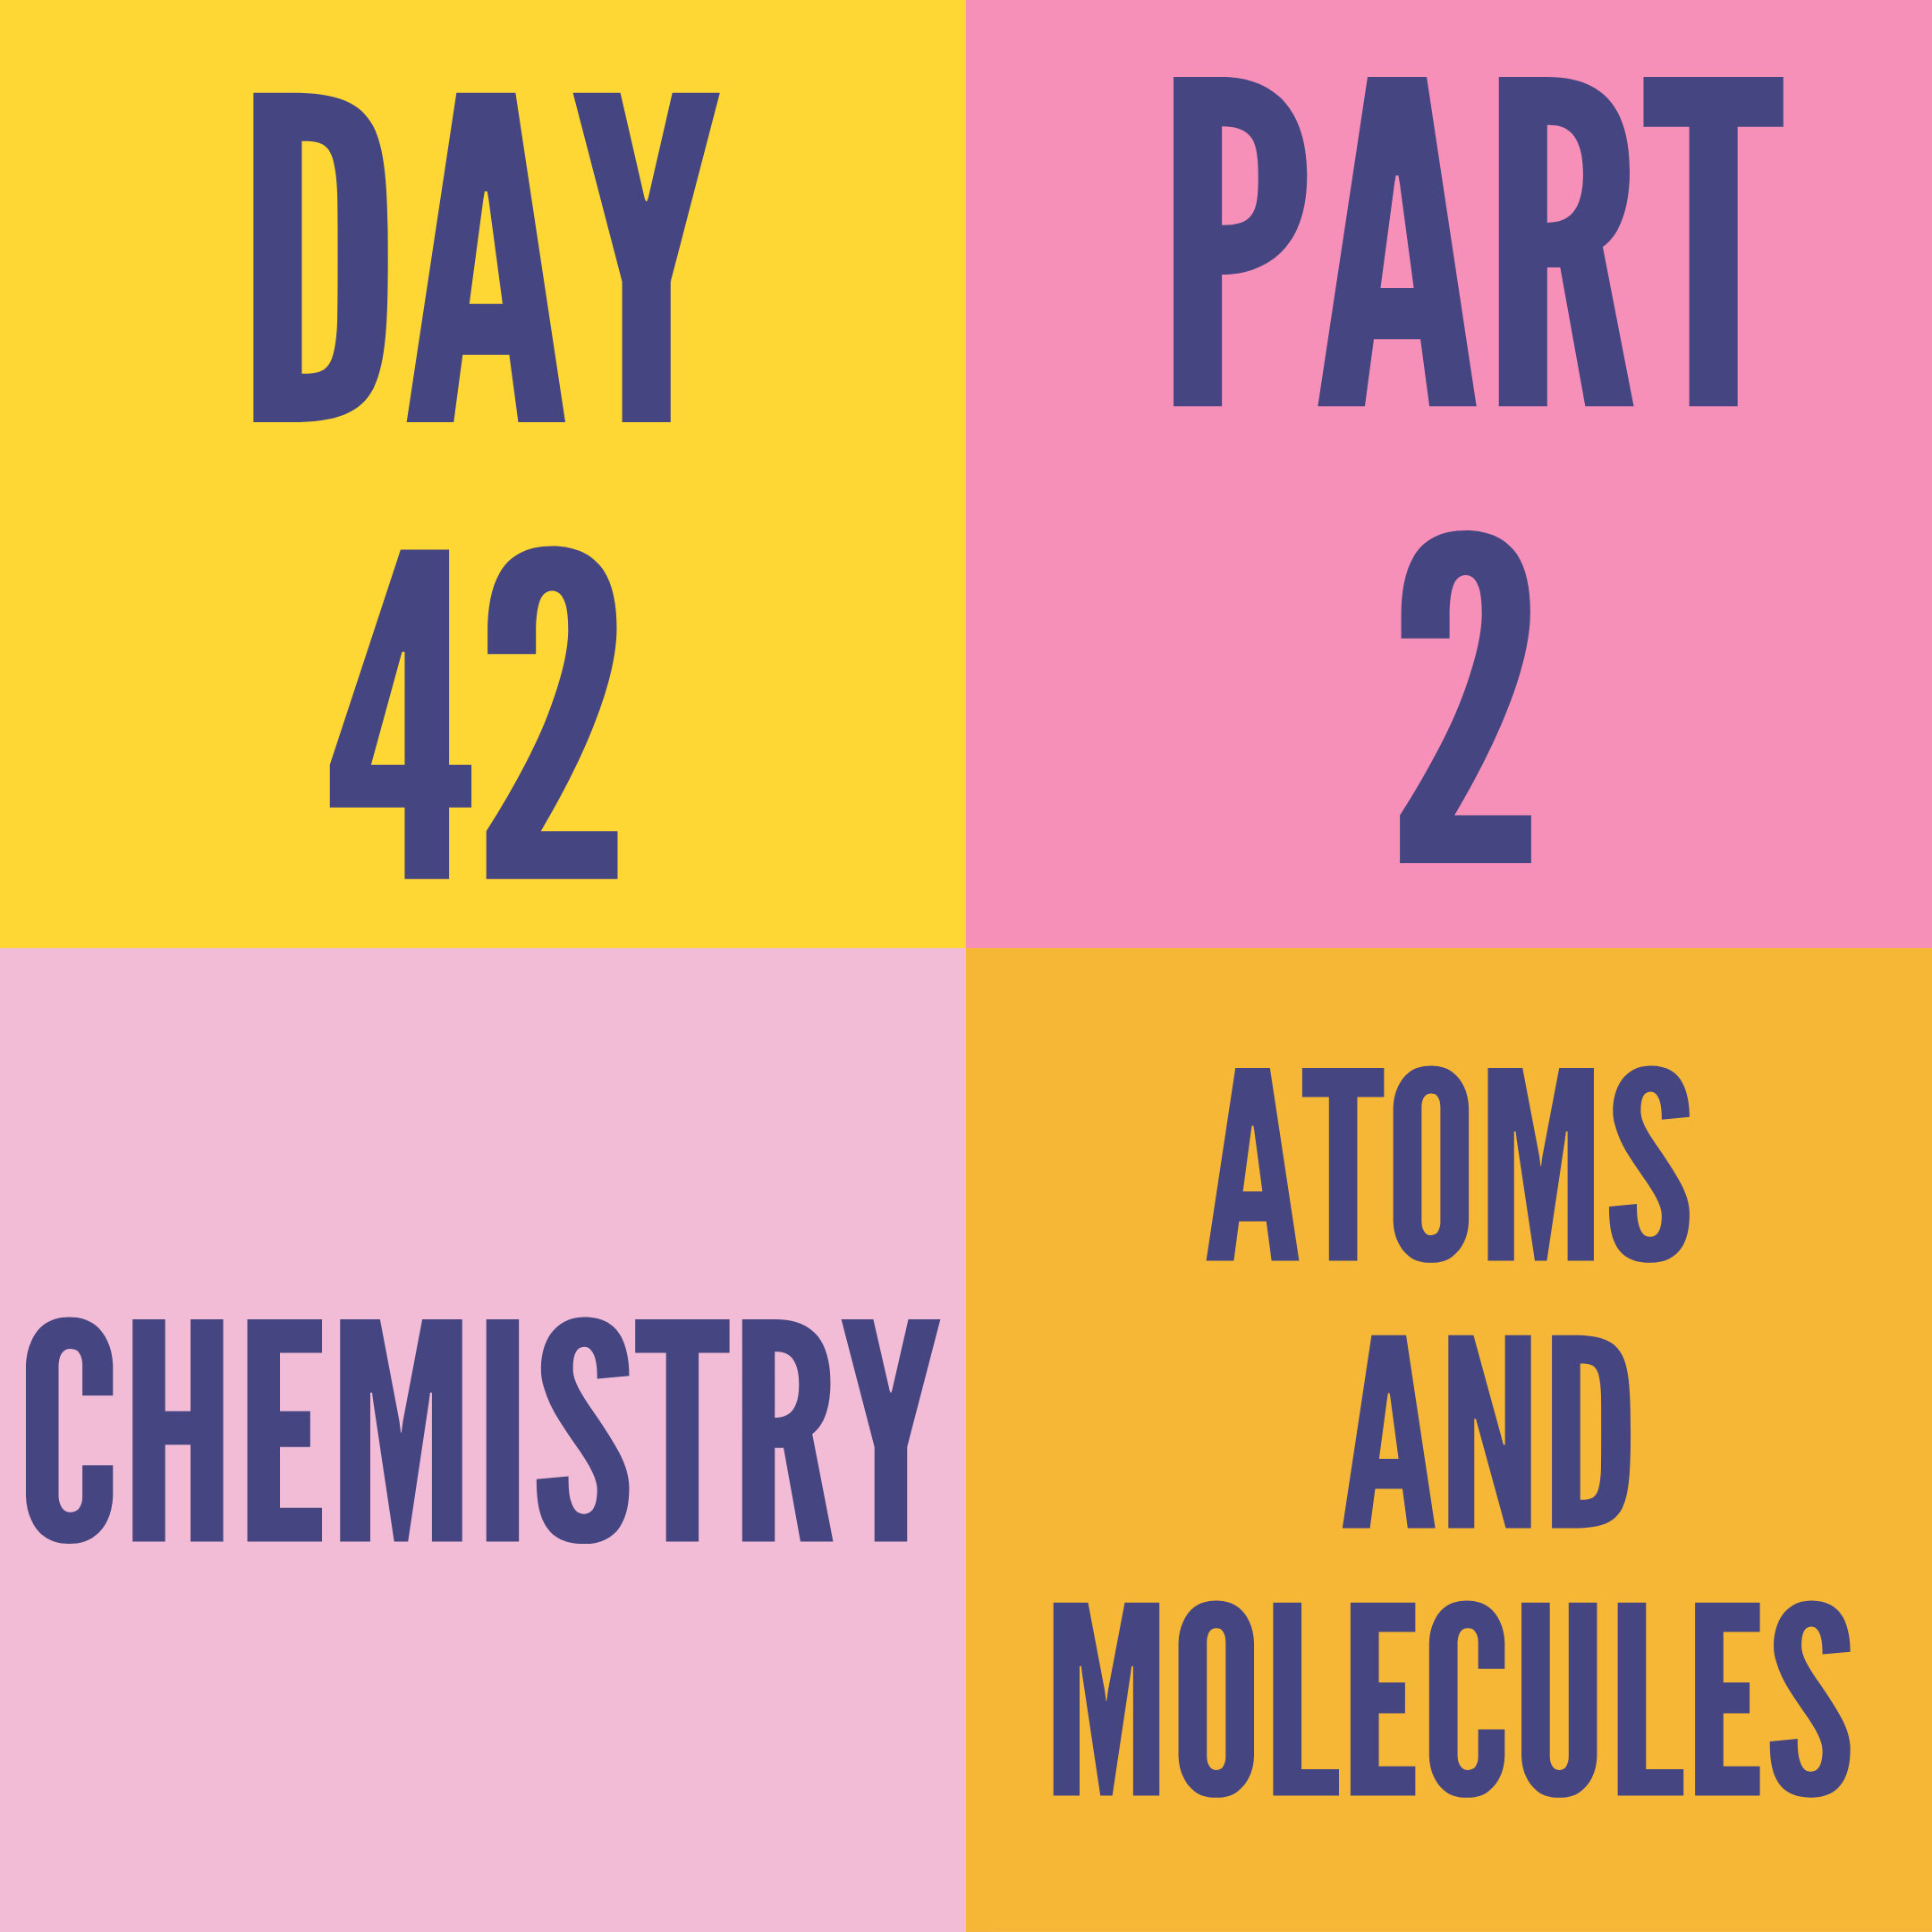 DAY-42 PART-2 ATOMS AND MOLECULES